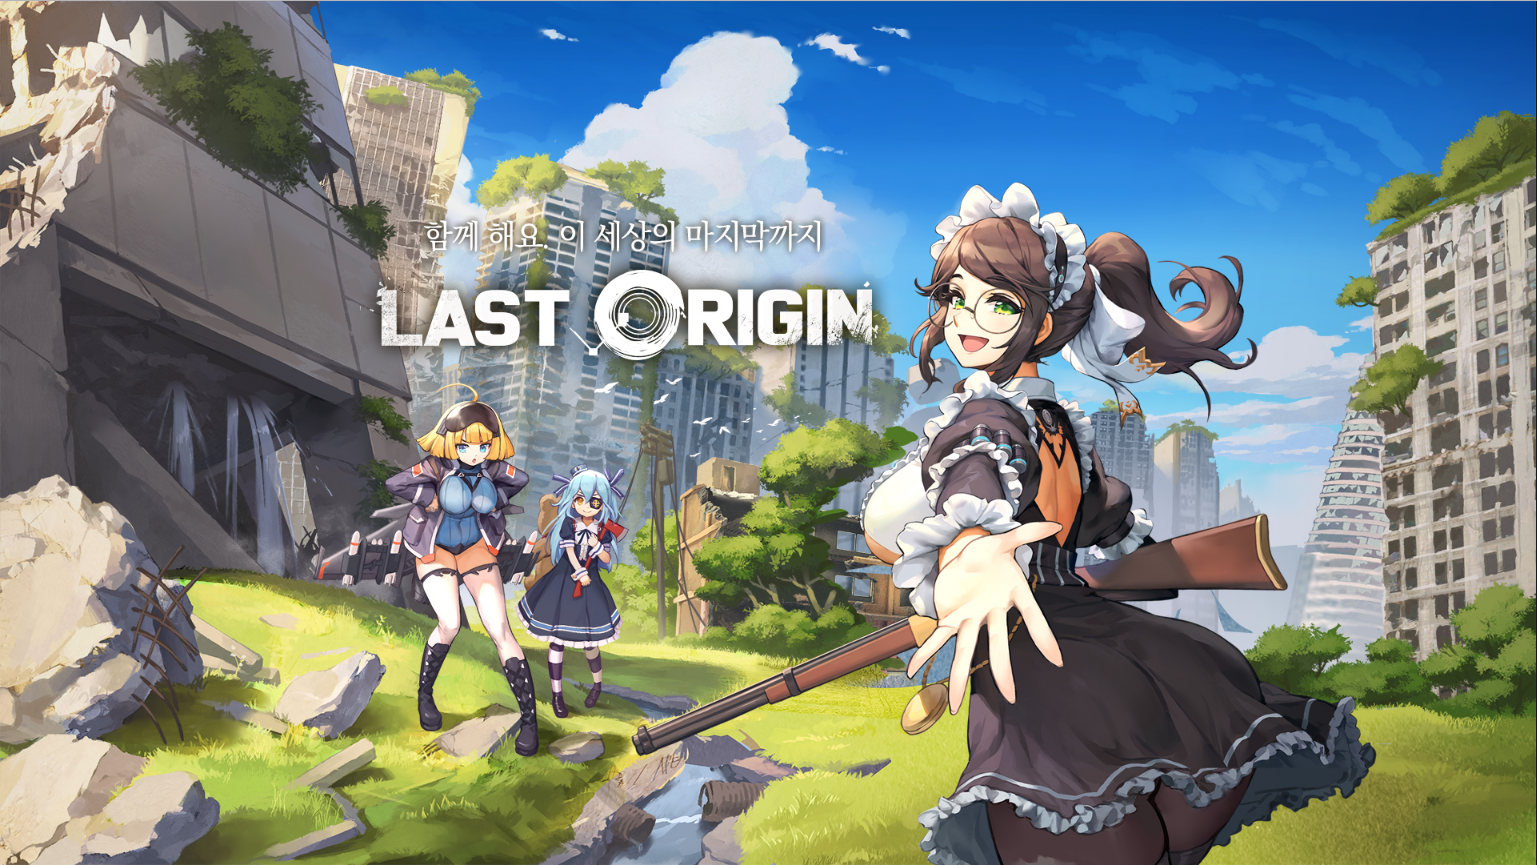 Last Origin - Japan and Global Servers